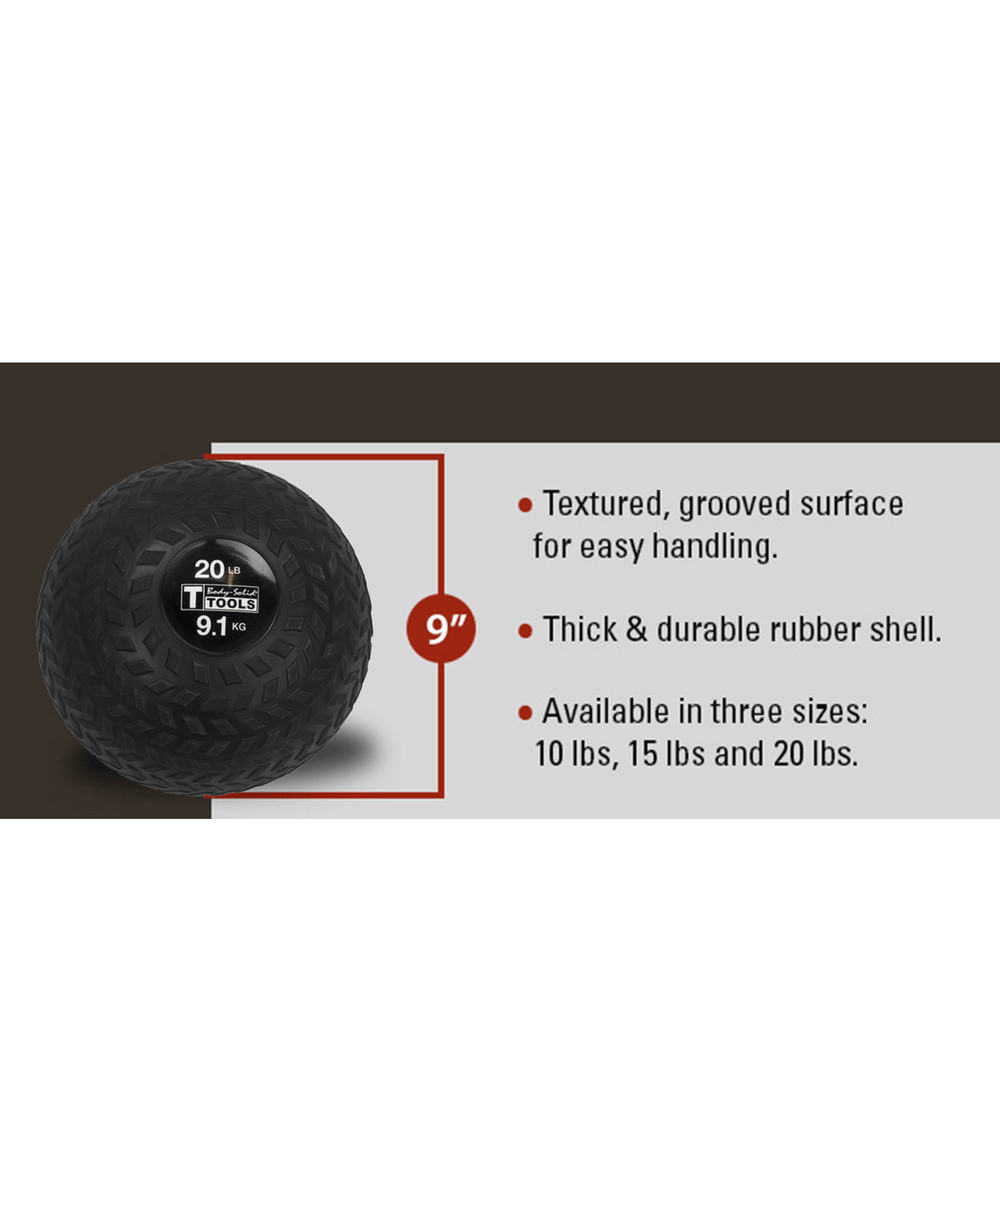 Body-Solid Tire Tread Slam Ball 20 lb Alt1